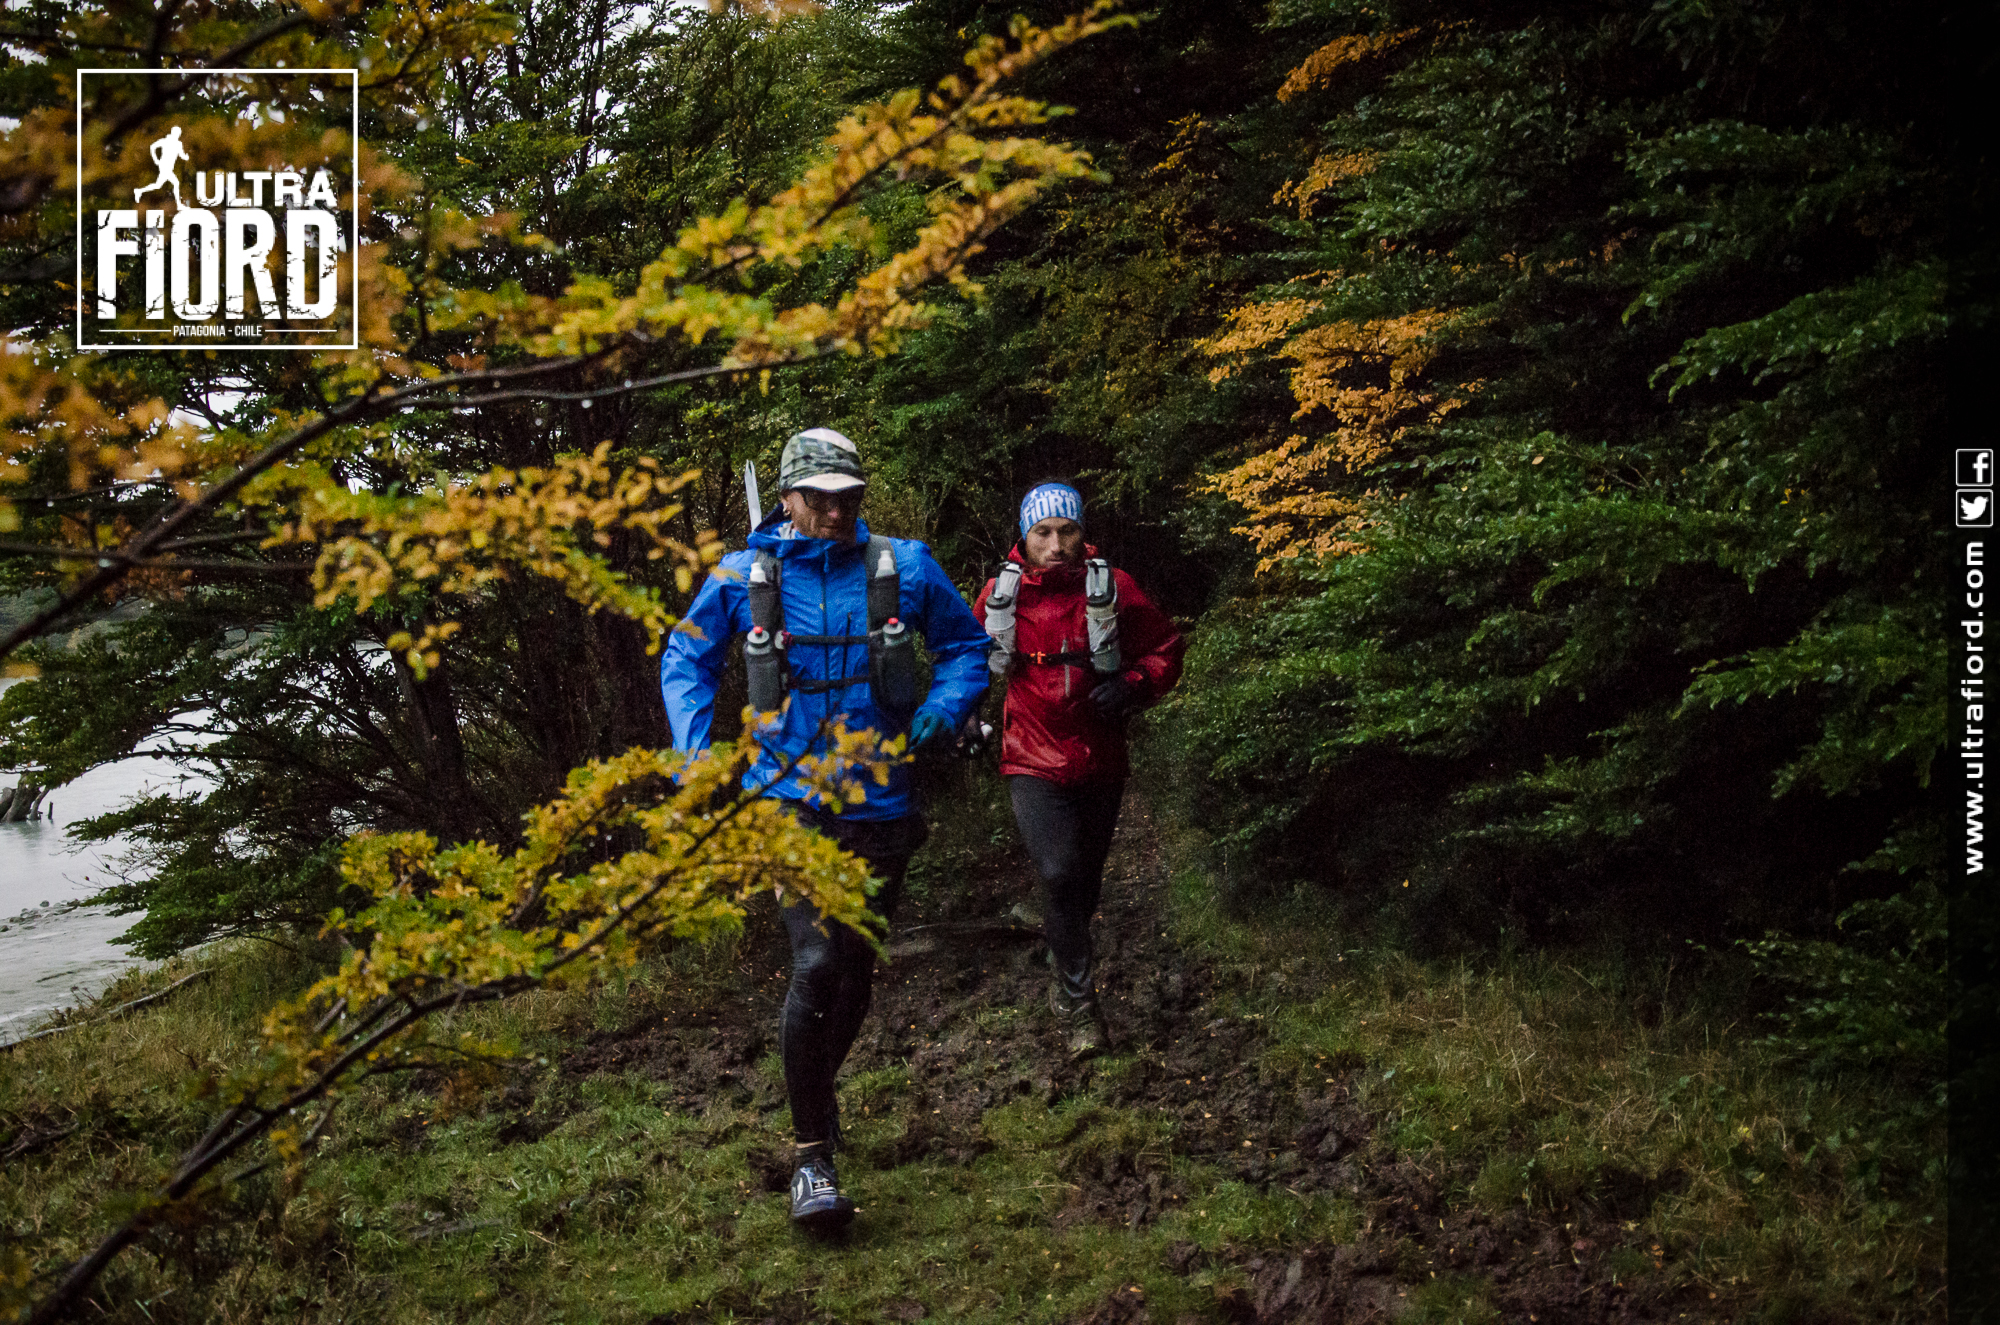 Ultima Esperanza, Patagonia, Chile, Ultra Trail Running, Ultra Fiord 2015, Jeff Browning and Emmanuel Acuna